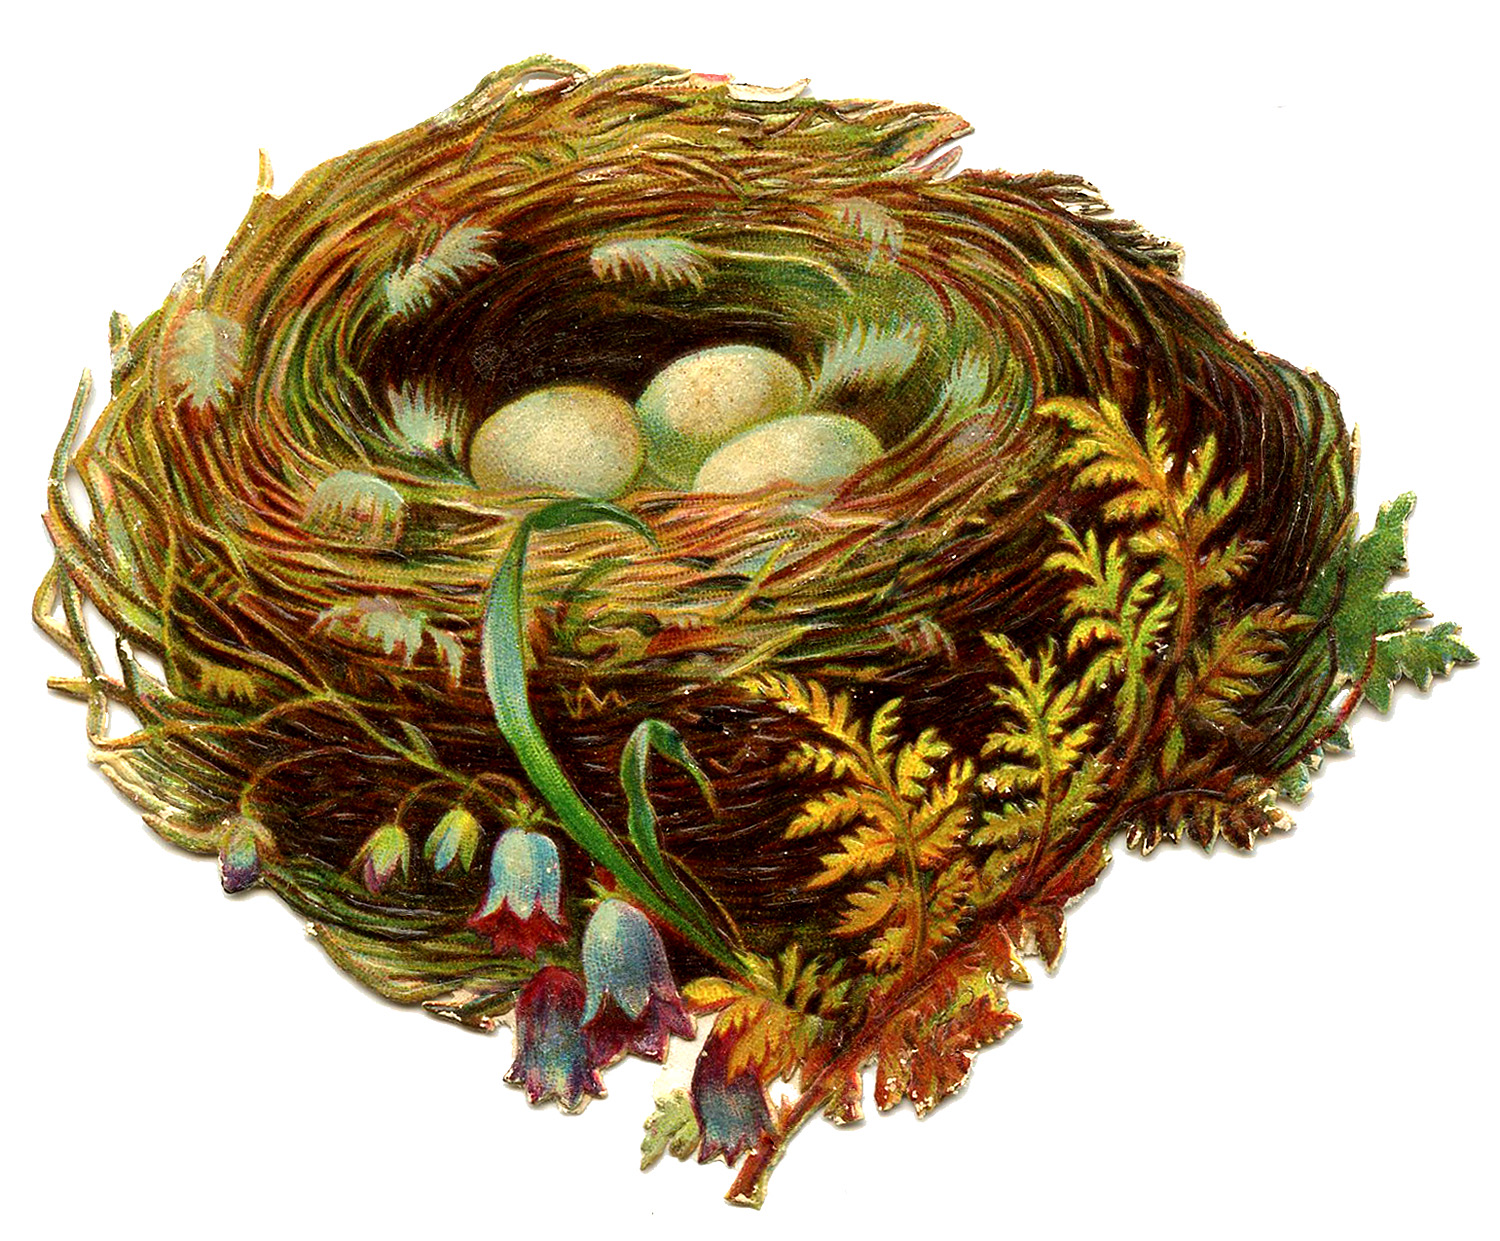 Vintage Graphic Pretty Nest With Eggs 2 The Graphics Fairy